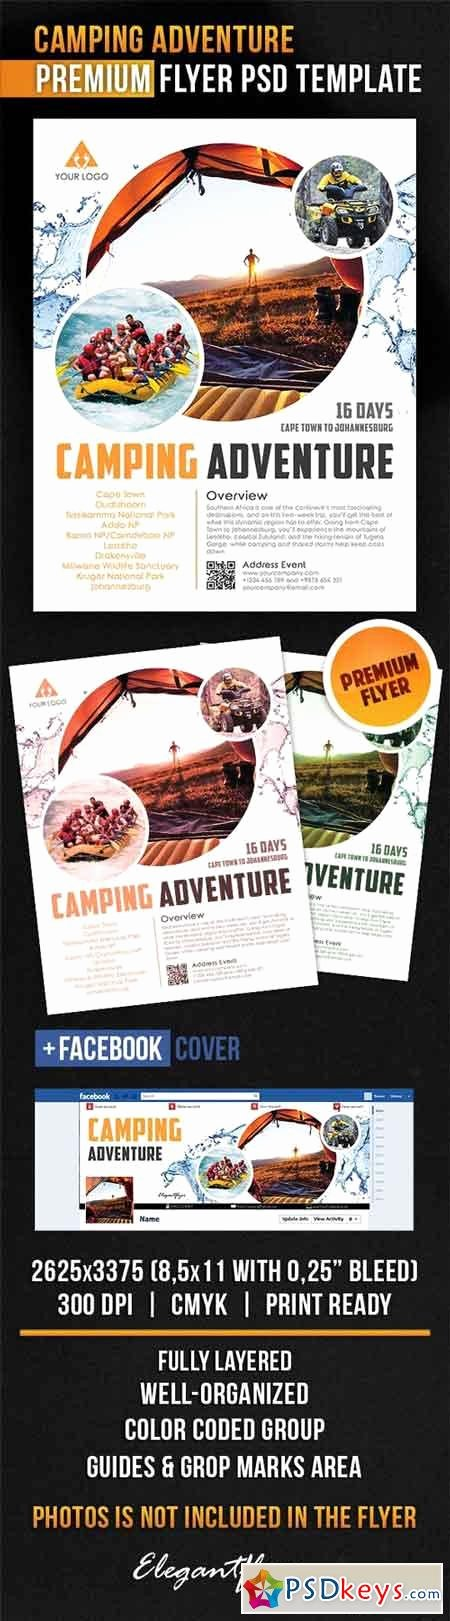 Camping Adventure – Flyer Psd Template Cover